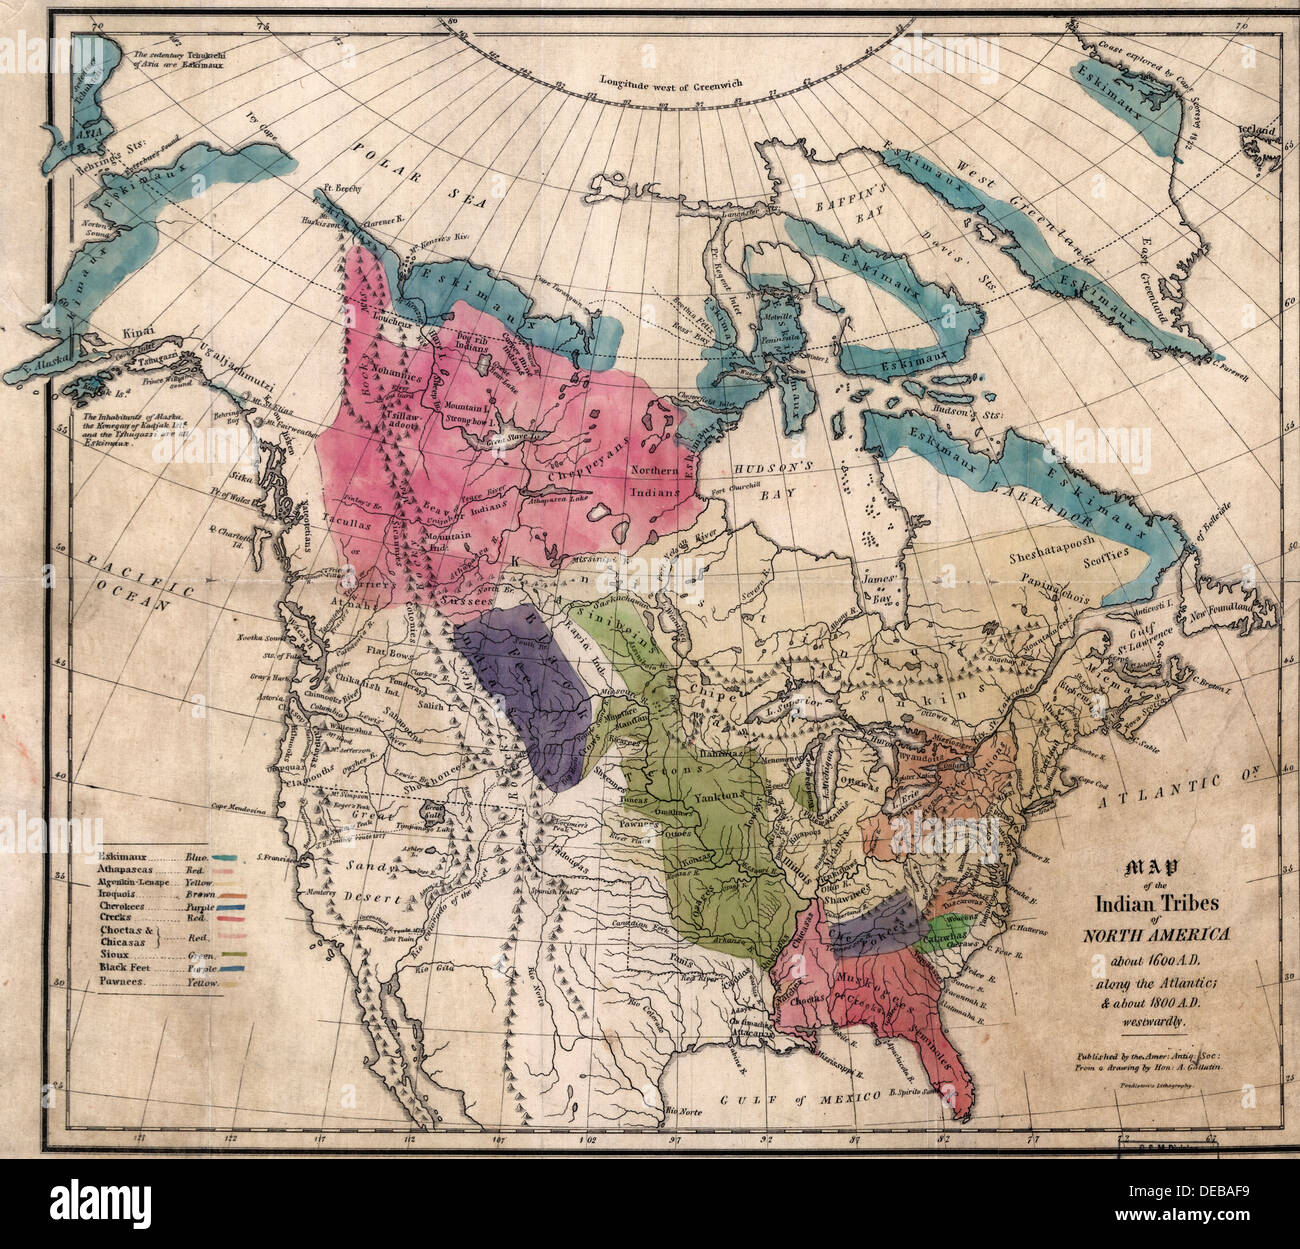 Native American Tribes Map Stock Photos & Native American Tribes Map ...